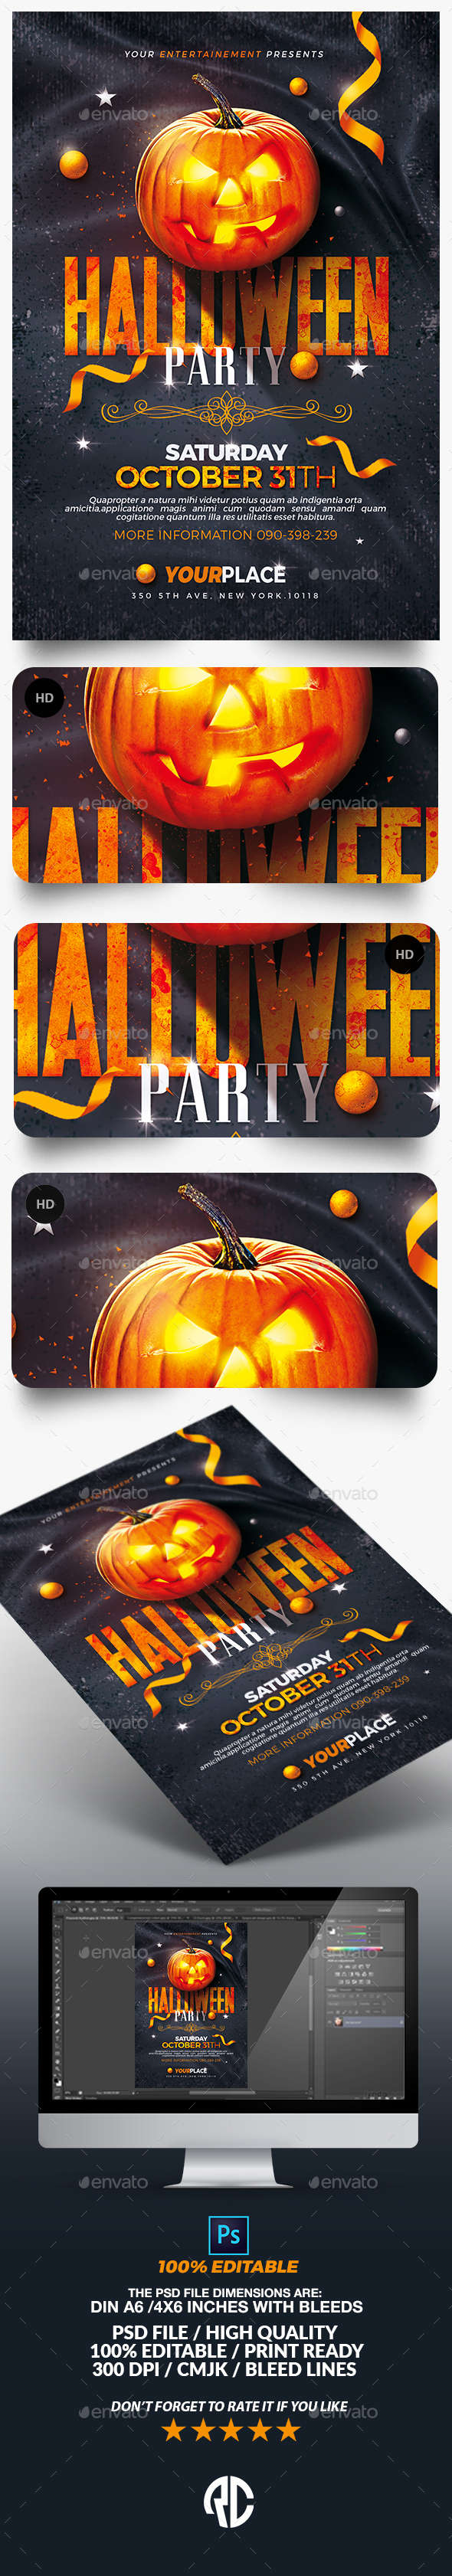 Classy Halloween Party Flyer Template